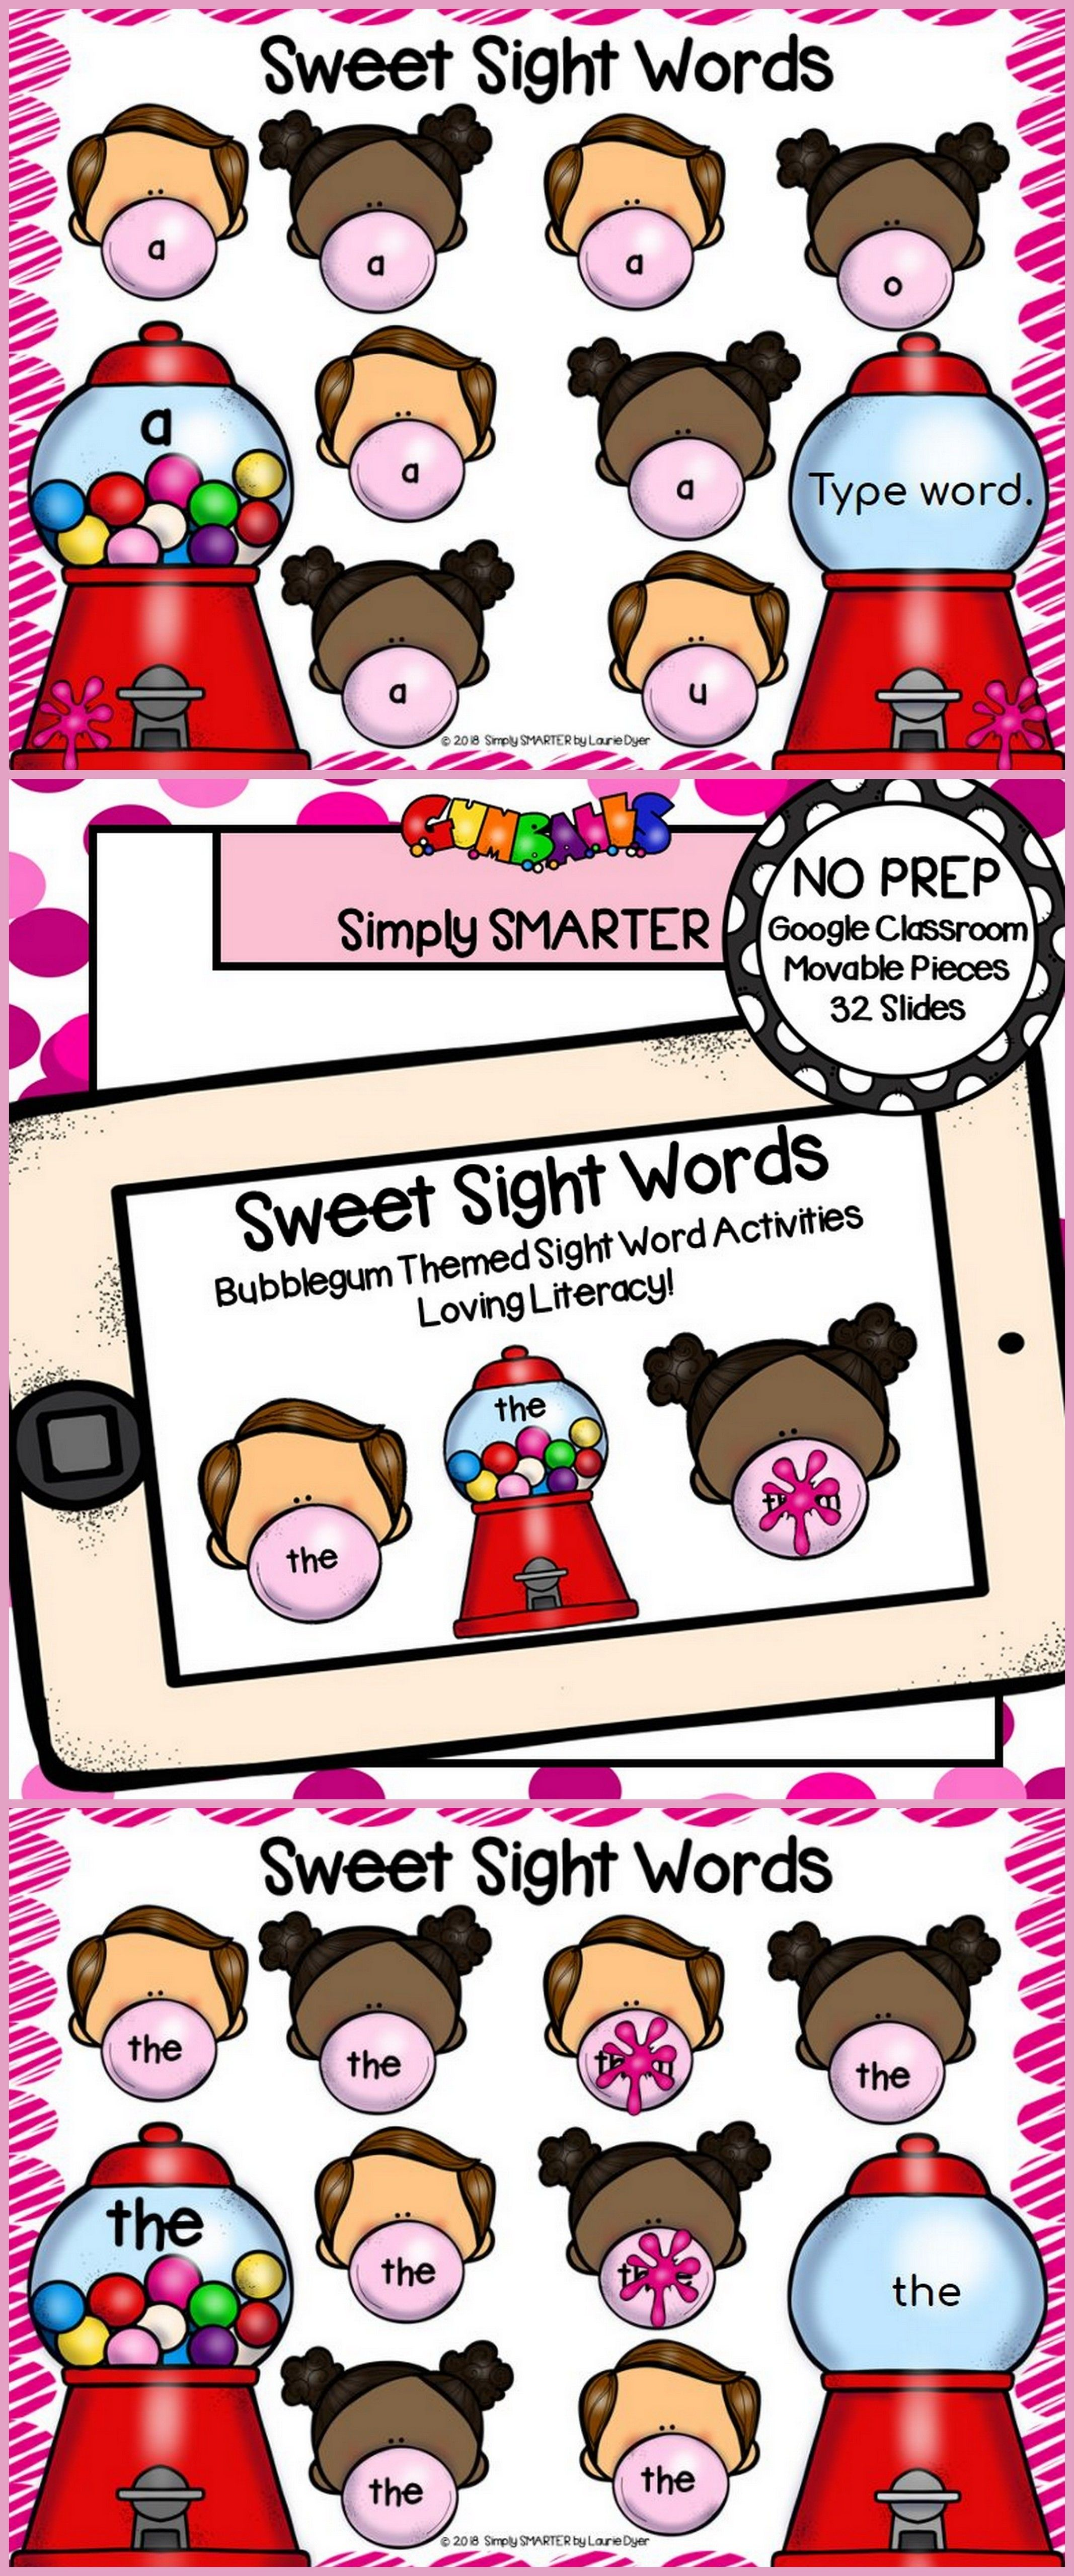 Gumball Themed Beginning Sight Word Building Activities For Classroom